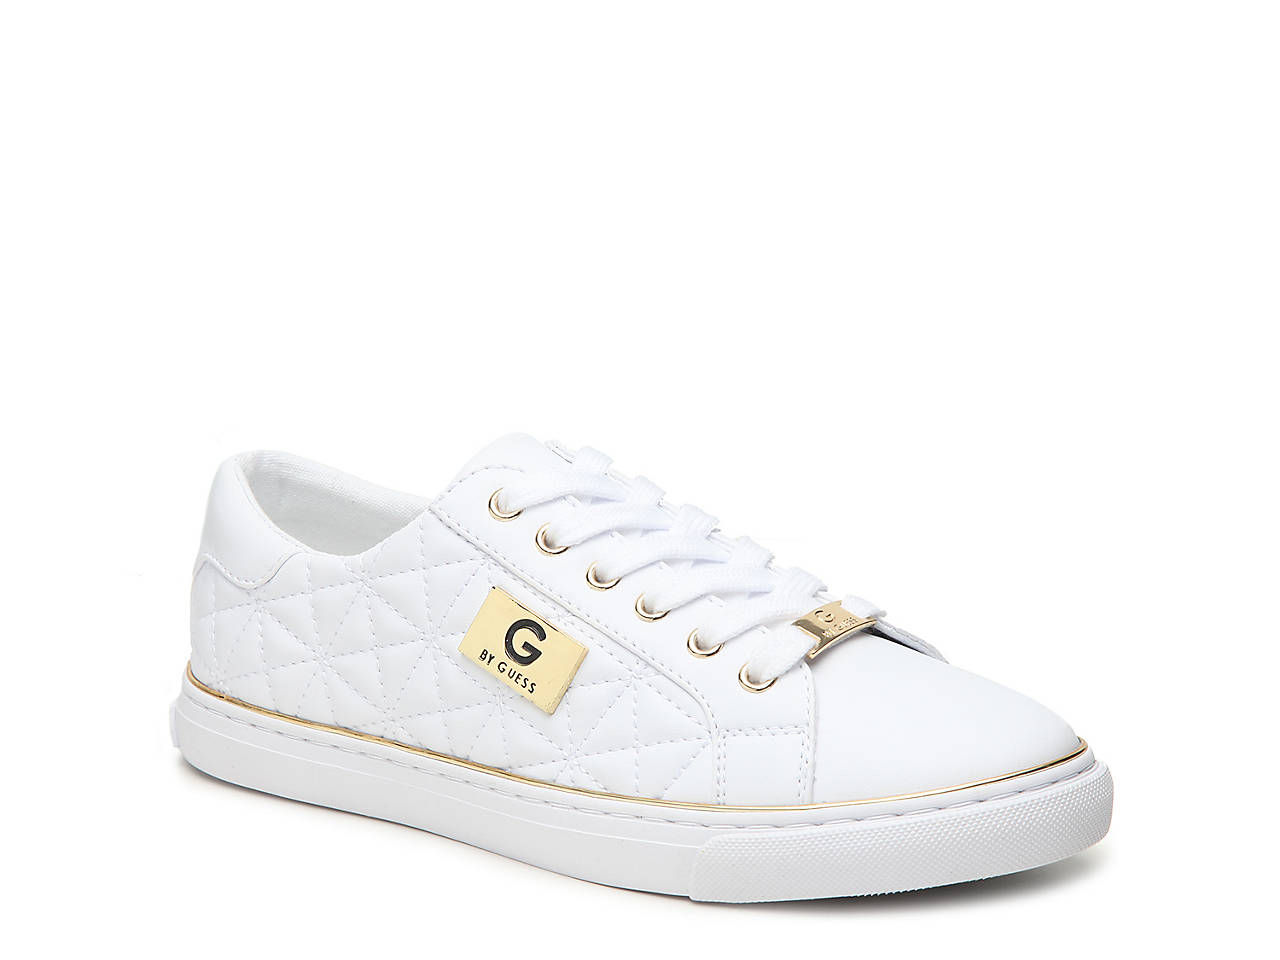 b9c2bab1c55f G by GUESS Office Quilted Sneaker Women s Shoes